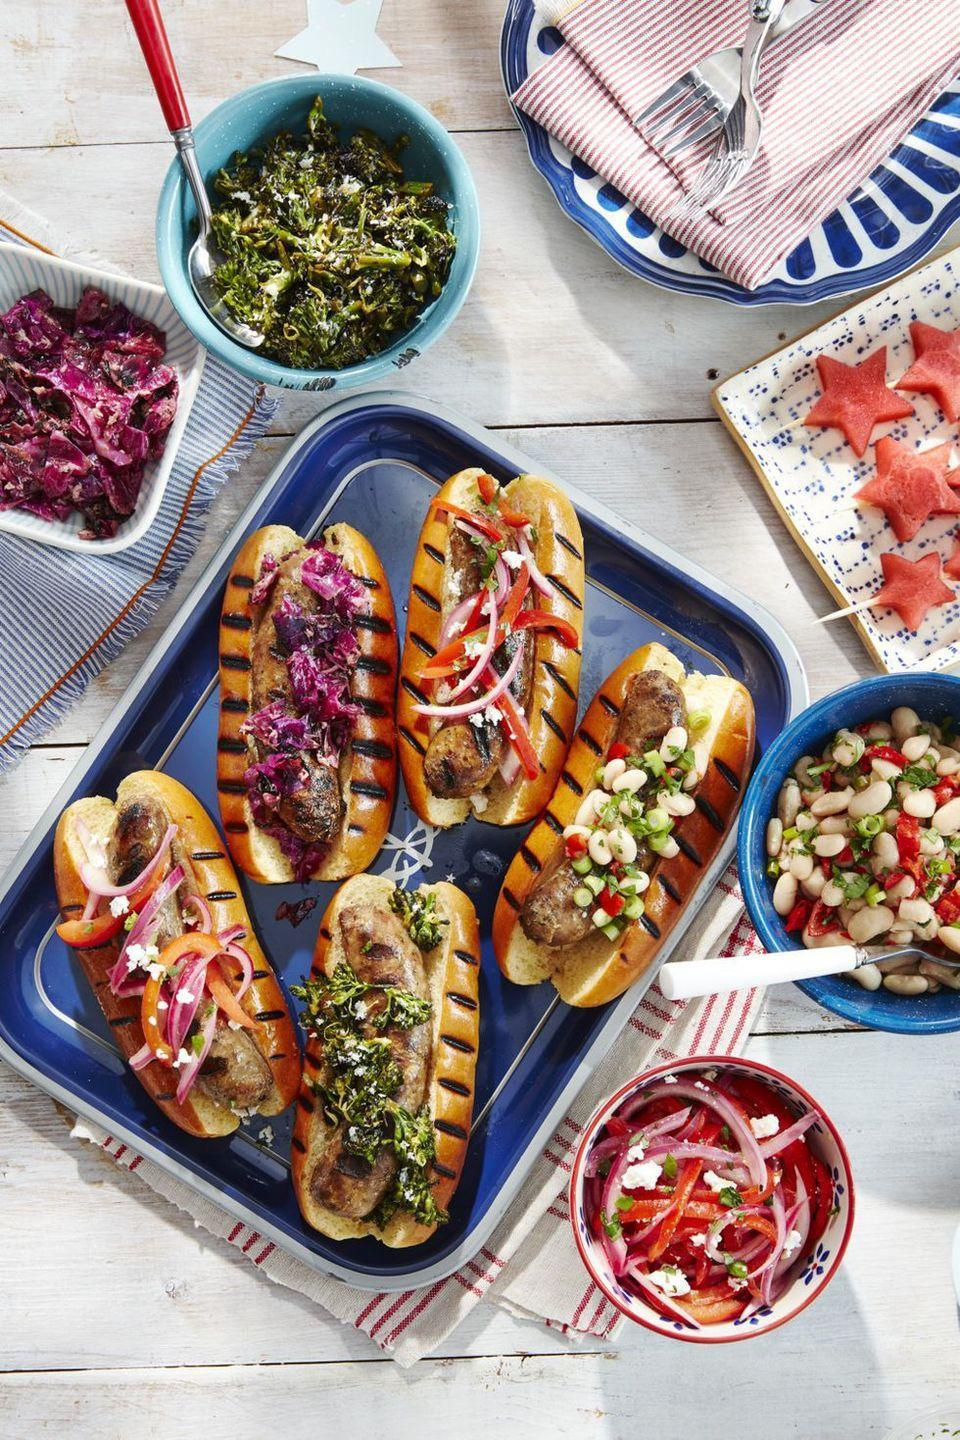 "<p>Just look at those grill marks. Dreamy! Add your favorite toppings, and a platter of these sausages will win you ""host of the year.""</p><p><strong><a href=""https://www.countryliving.com/food-drinks/a28188266/grilled-sausages-recipe/"" rel=""nofollow noopener"" target=""_blank"" data-ylk=""slk:Get the recipe"" class=""link rapid-noclick-resp"">Get the recipe</a>.</strong></p><p><strong><a class=""link rapid-noclick-resp"" href=""https://www.amazon.com/Reston-Lloyd-Melamine-Rectangular-Turquoise/dp/B000UOG83Y/?tag=syn-yahoo-20&ascsubtag=%5Bartid%7C10050.g.3663%5Bsrc%7Cyahoo-us"" rel=""nofollow noopener"" target=""_blank"" data-ylk=""slk:SHOP SERVING TRAYS"">SHOP SERVING TRAYS</a></strong></p>"